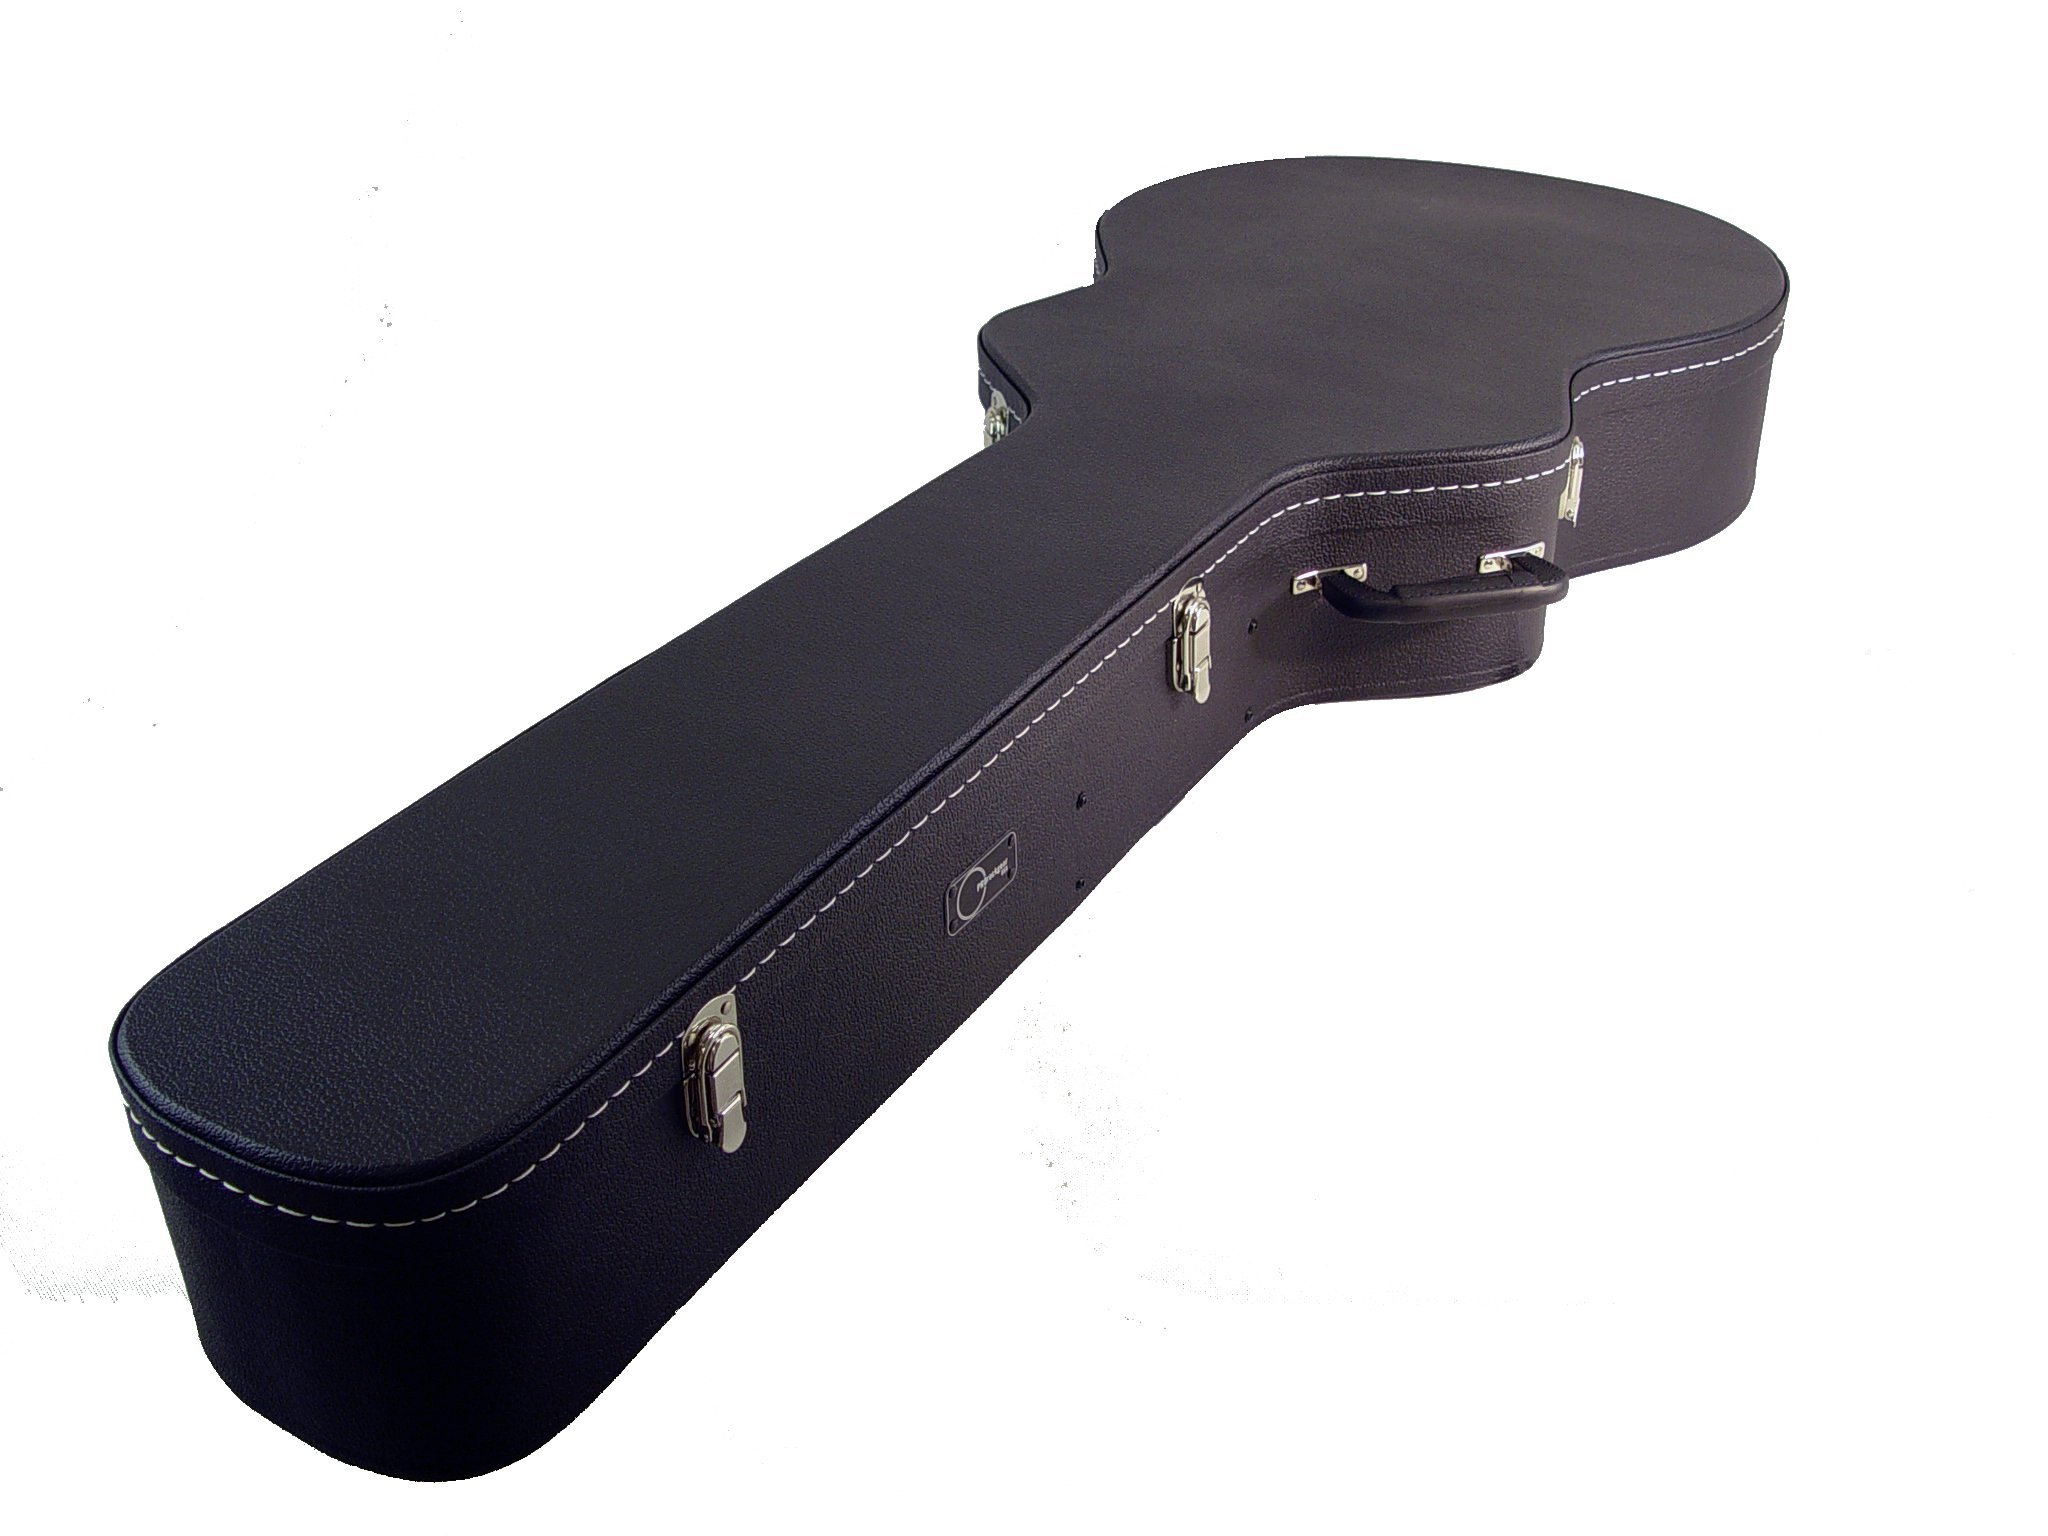 ProRockGear Artist Series Les Paul Guitar Case